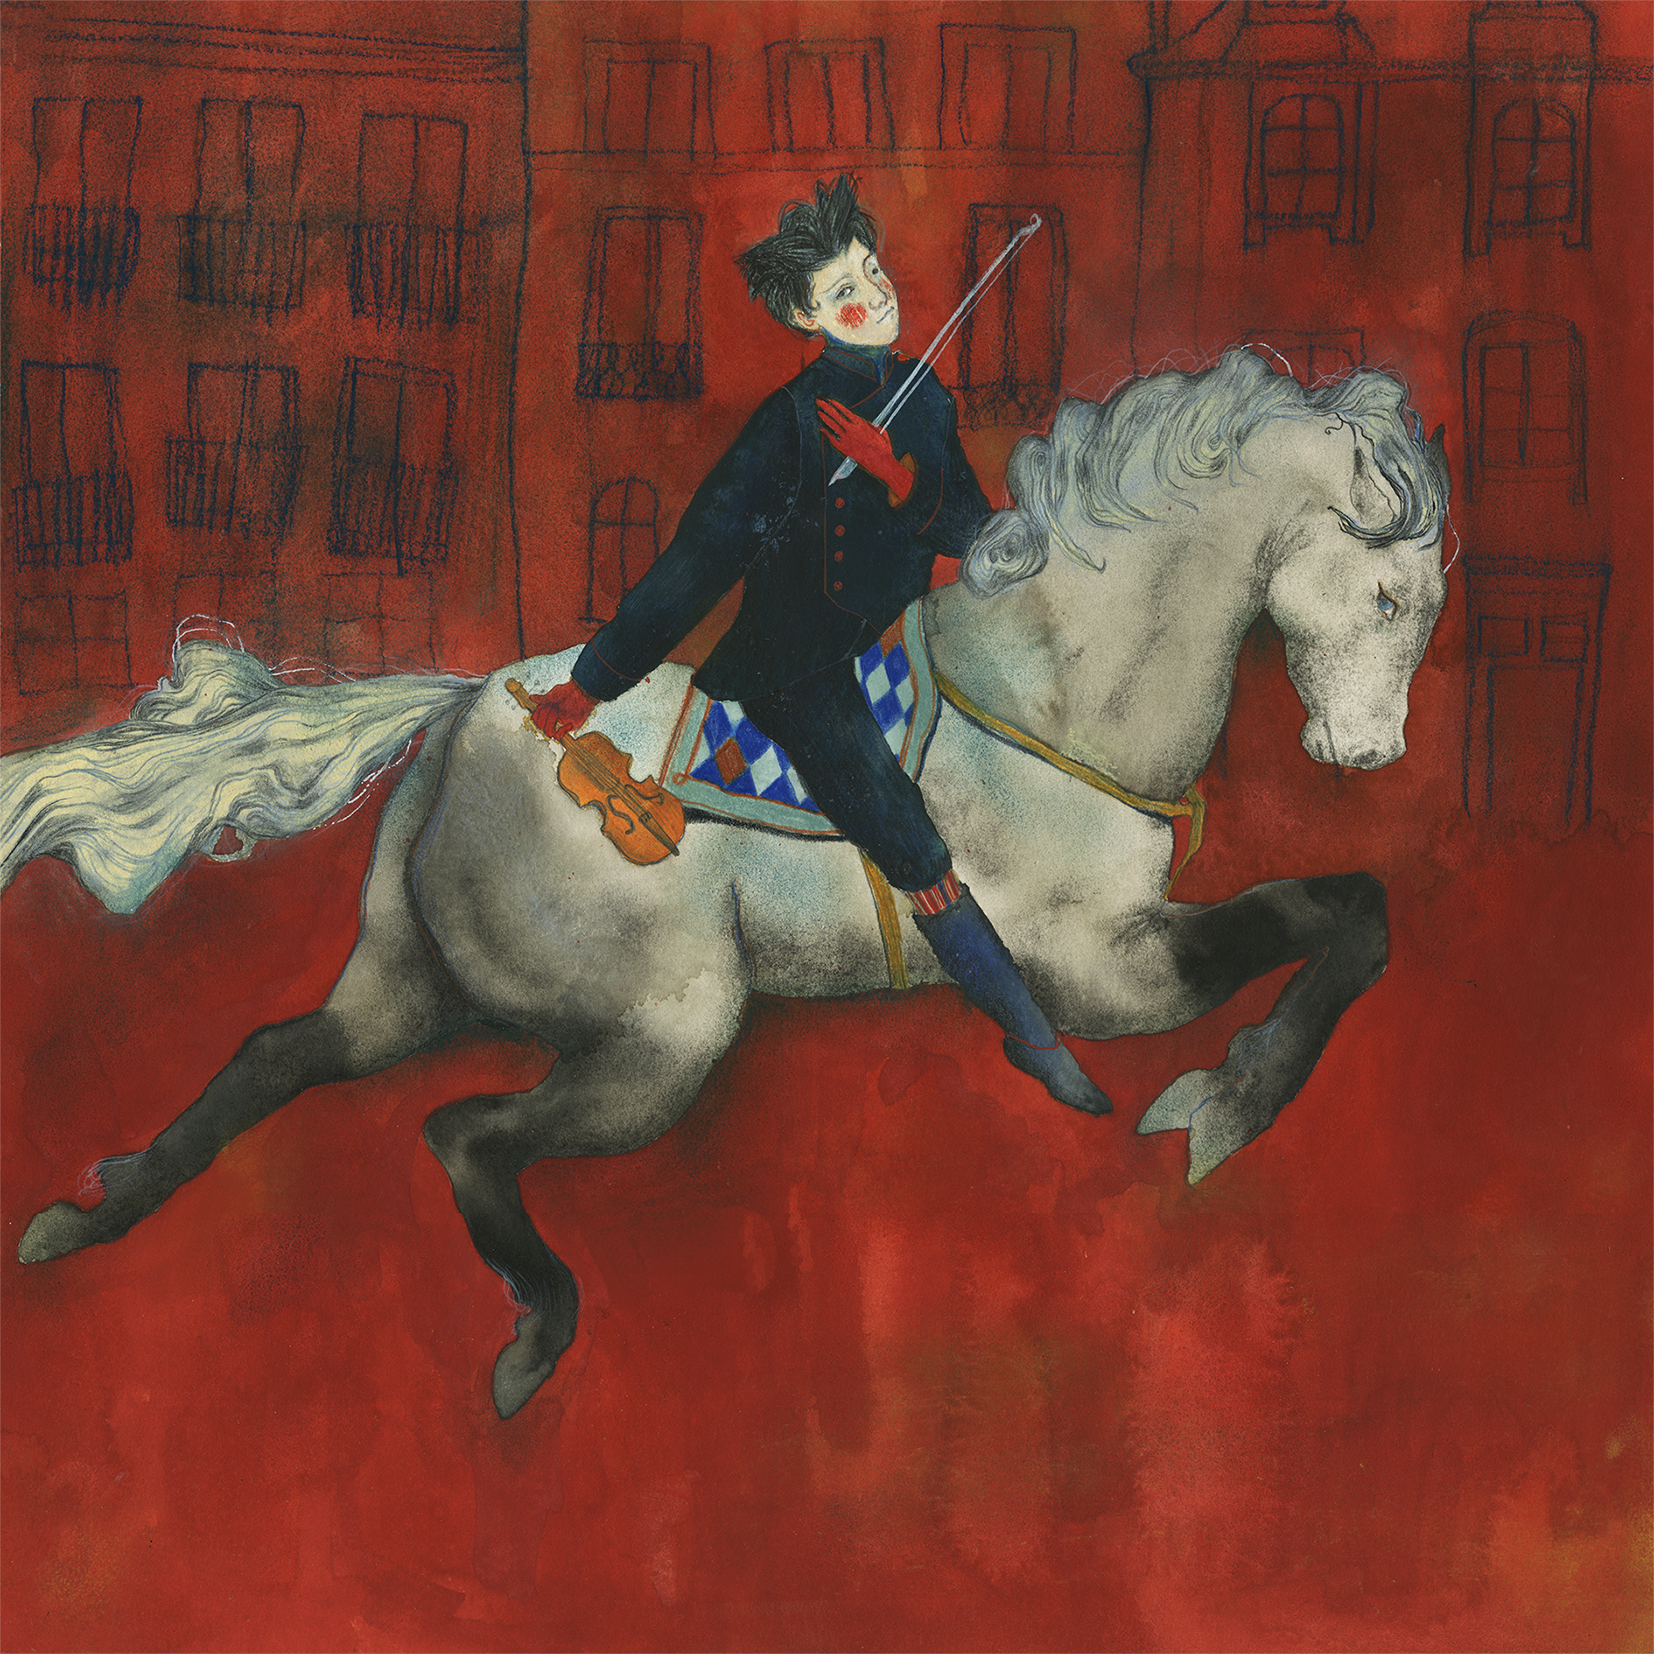 An illustration of a figure riding a horse across an empty city. The outlines of the buildings are simple colored lines against a deep red background. The figure is dressed in a blue suit and is holding a violin. An image meant to accompany Igor Stravinsk